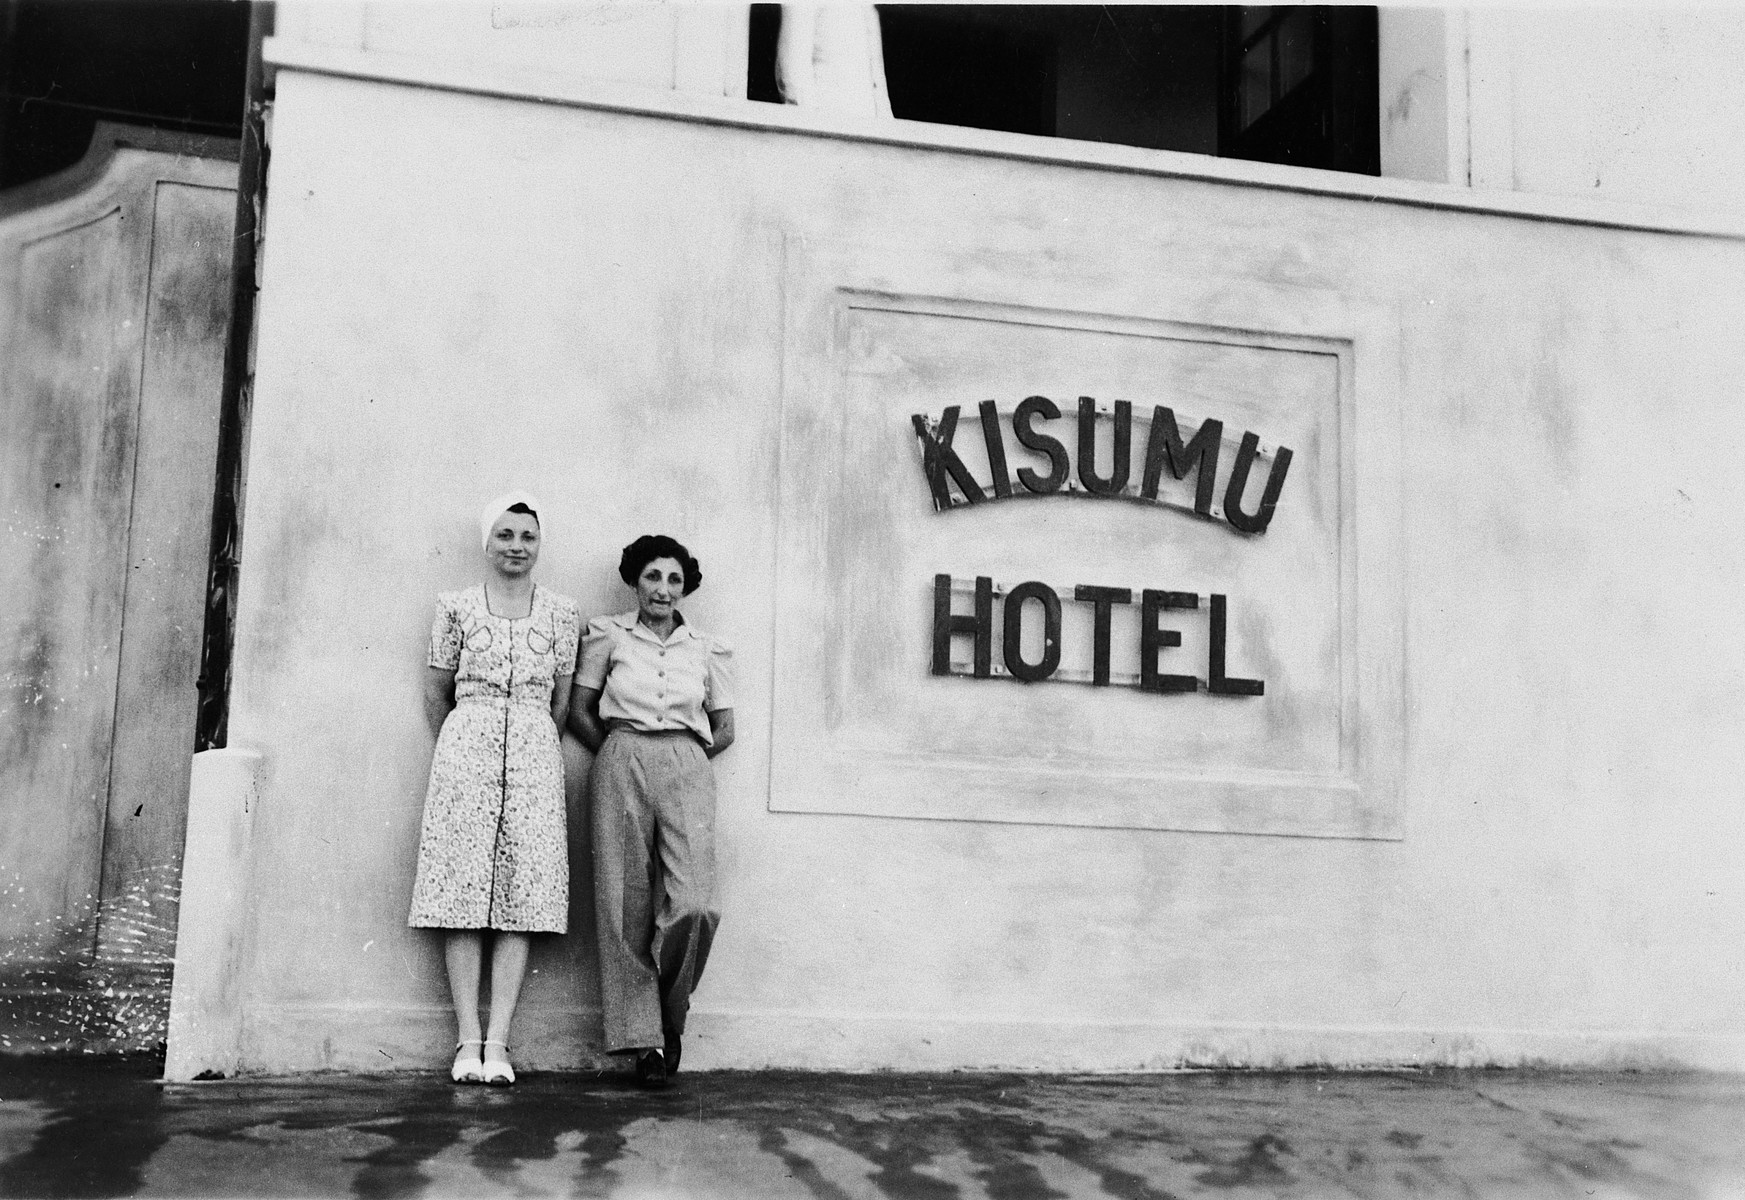 A Jewish refugee poses with a friend outside the Kisumu Hotel in Kisumu, Kenya.  Pictured is Ruth Weyl and a friend.